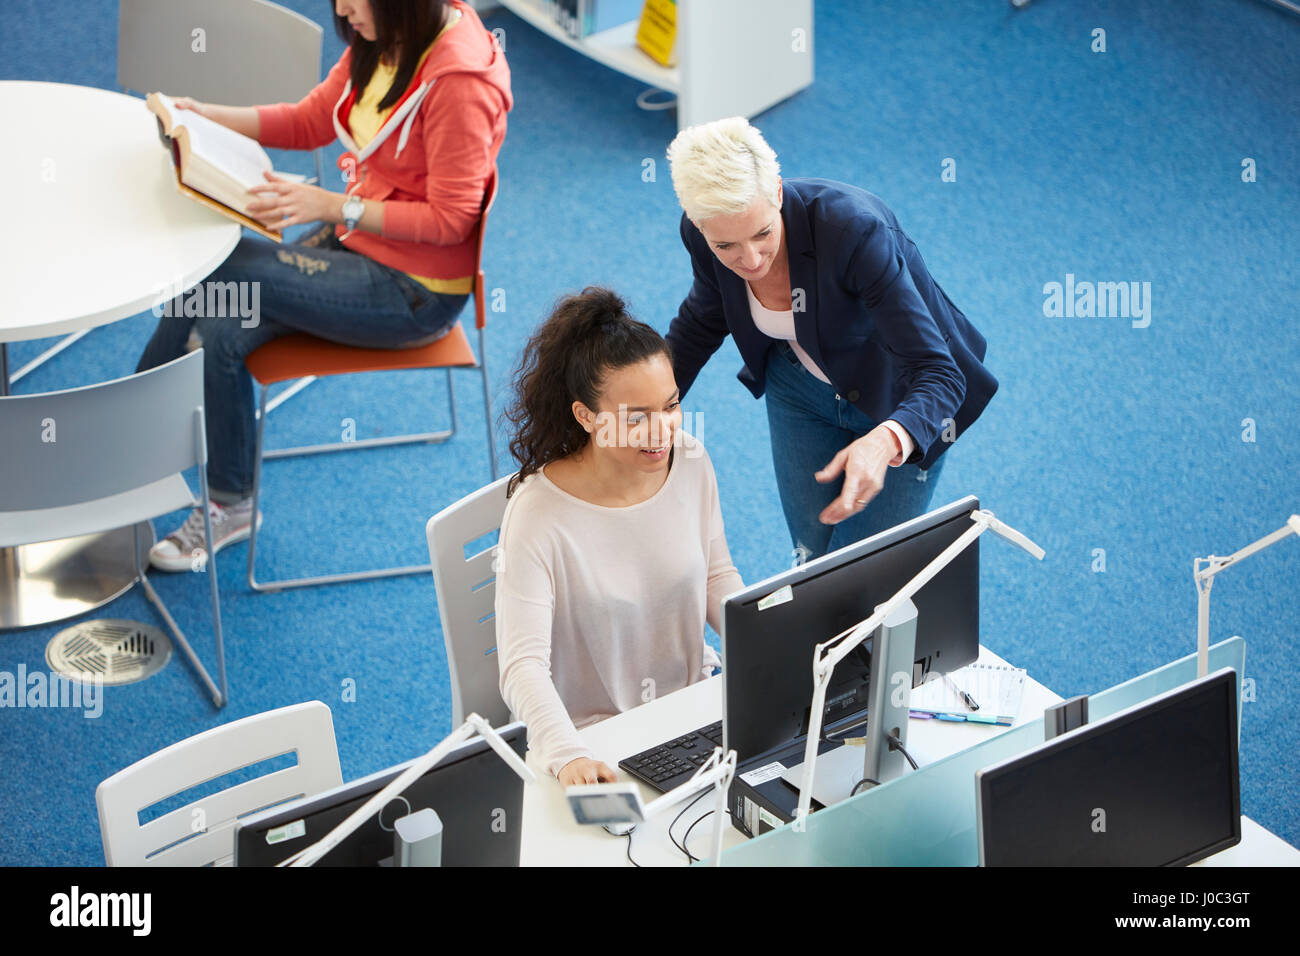 University students working in library - Stock Image